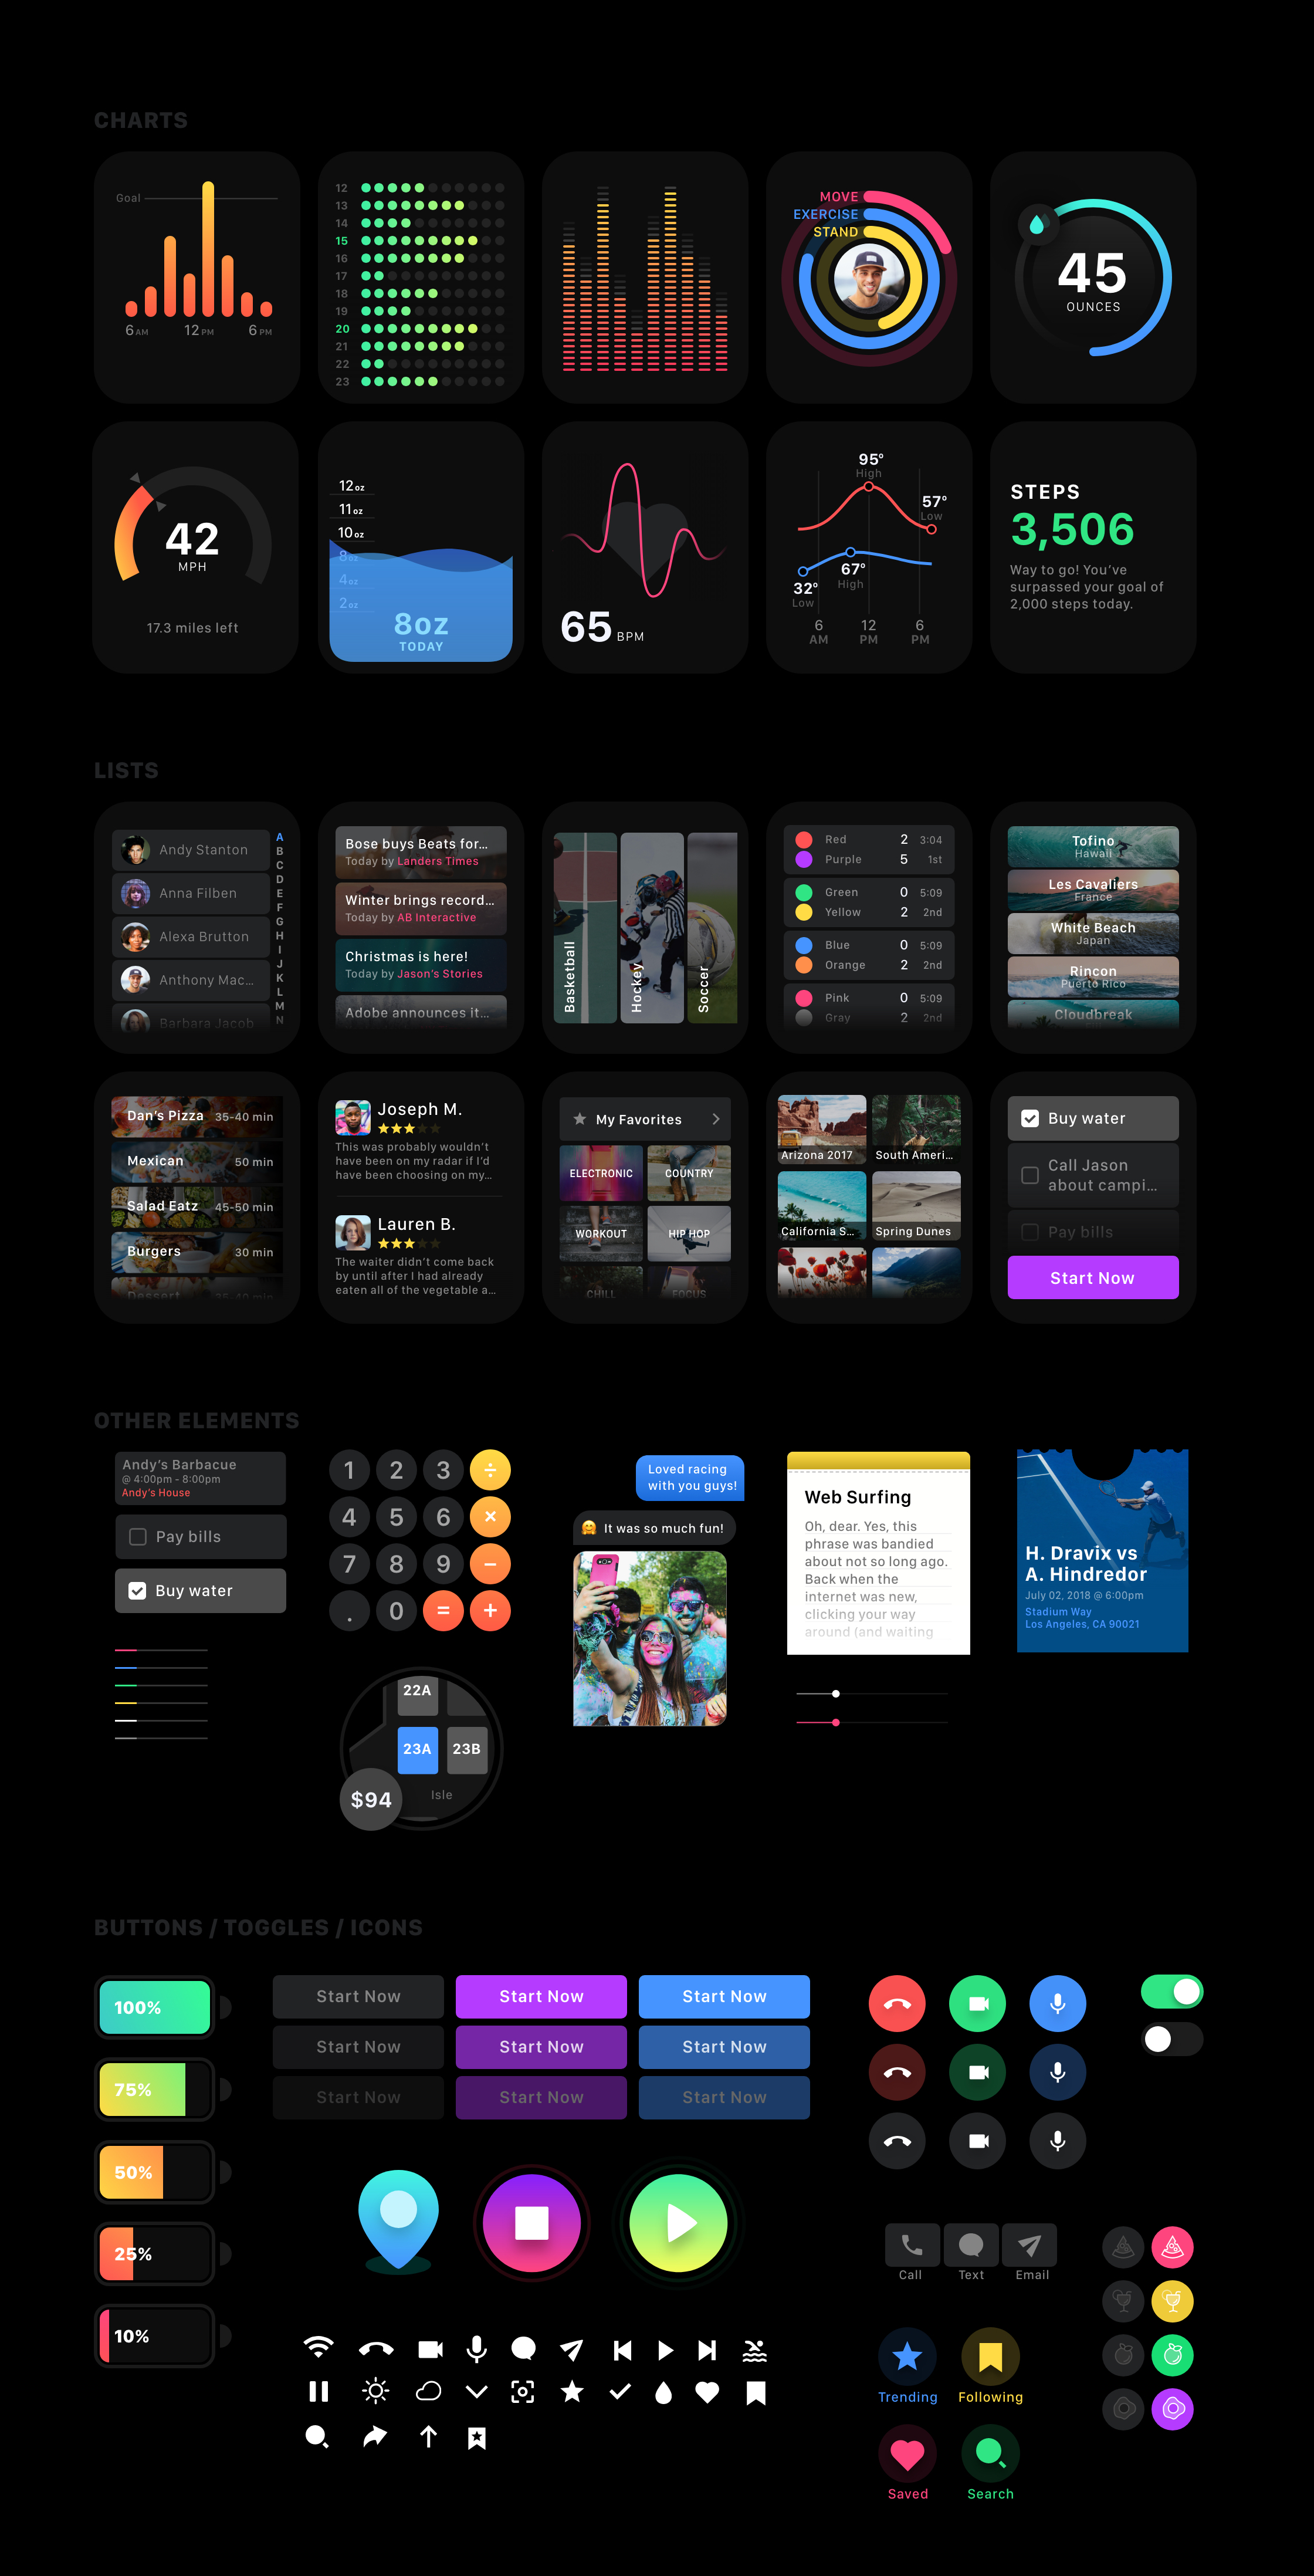 Smartwatch UI Kit - Completely free and fully customizable Smartwatch UI Kit for Adobe XD